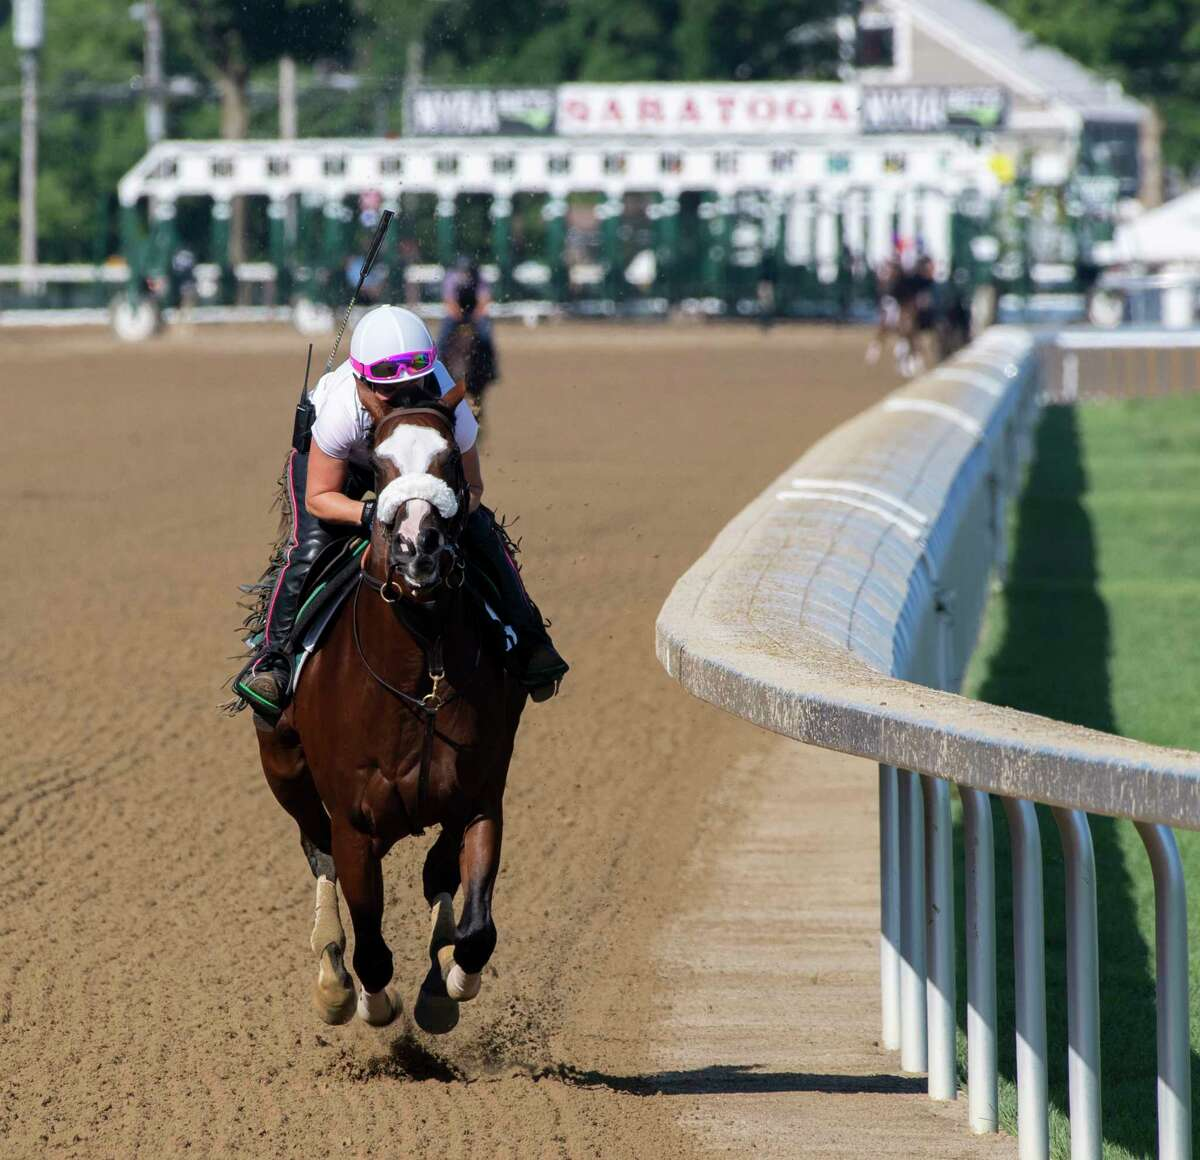 Belmont Stakes winner and local favorite New York Bred Tiz the Law breezed under the guidance of exercise rider Heather Smullen at the Saratoga Race Course July 18, 2020 in Saratoga Springs, N.Y. Photo by Skip Dickstein/Special to the Times Union.